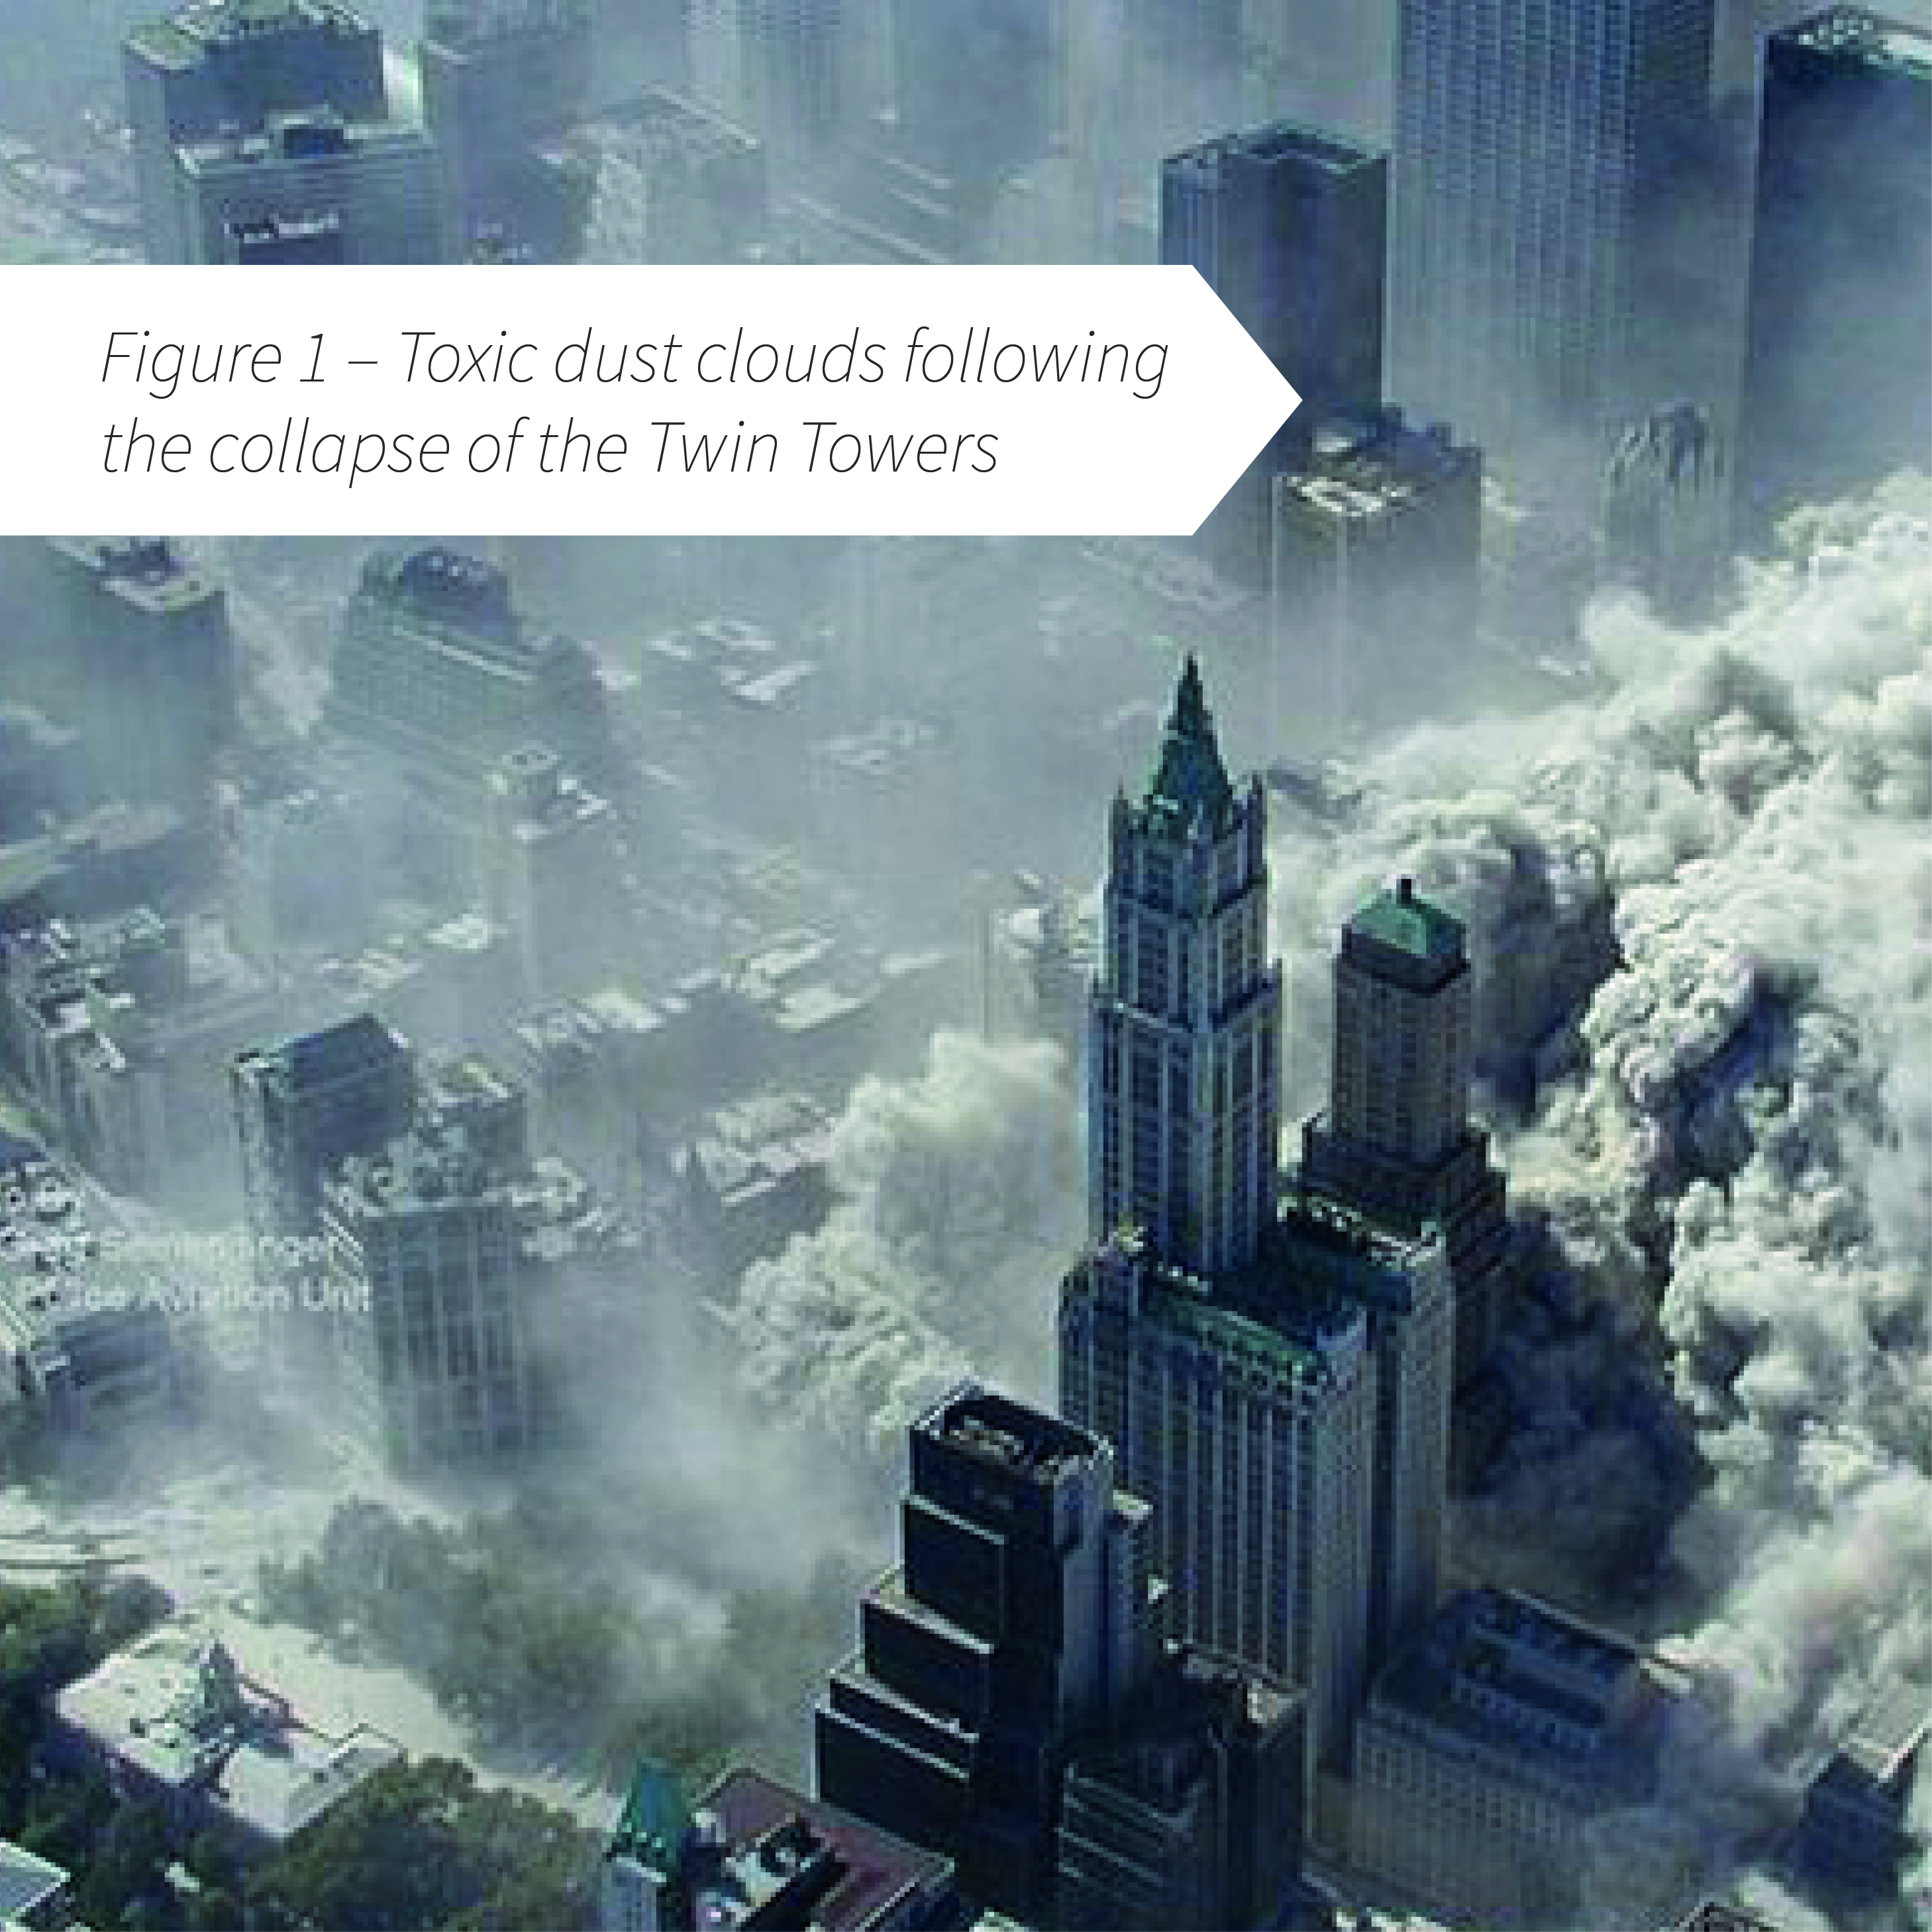 Figure 1 - Toxic dust clouds following the collapse of the Twin Towers on 9/11